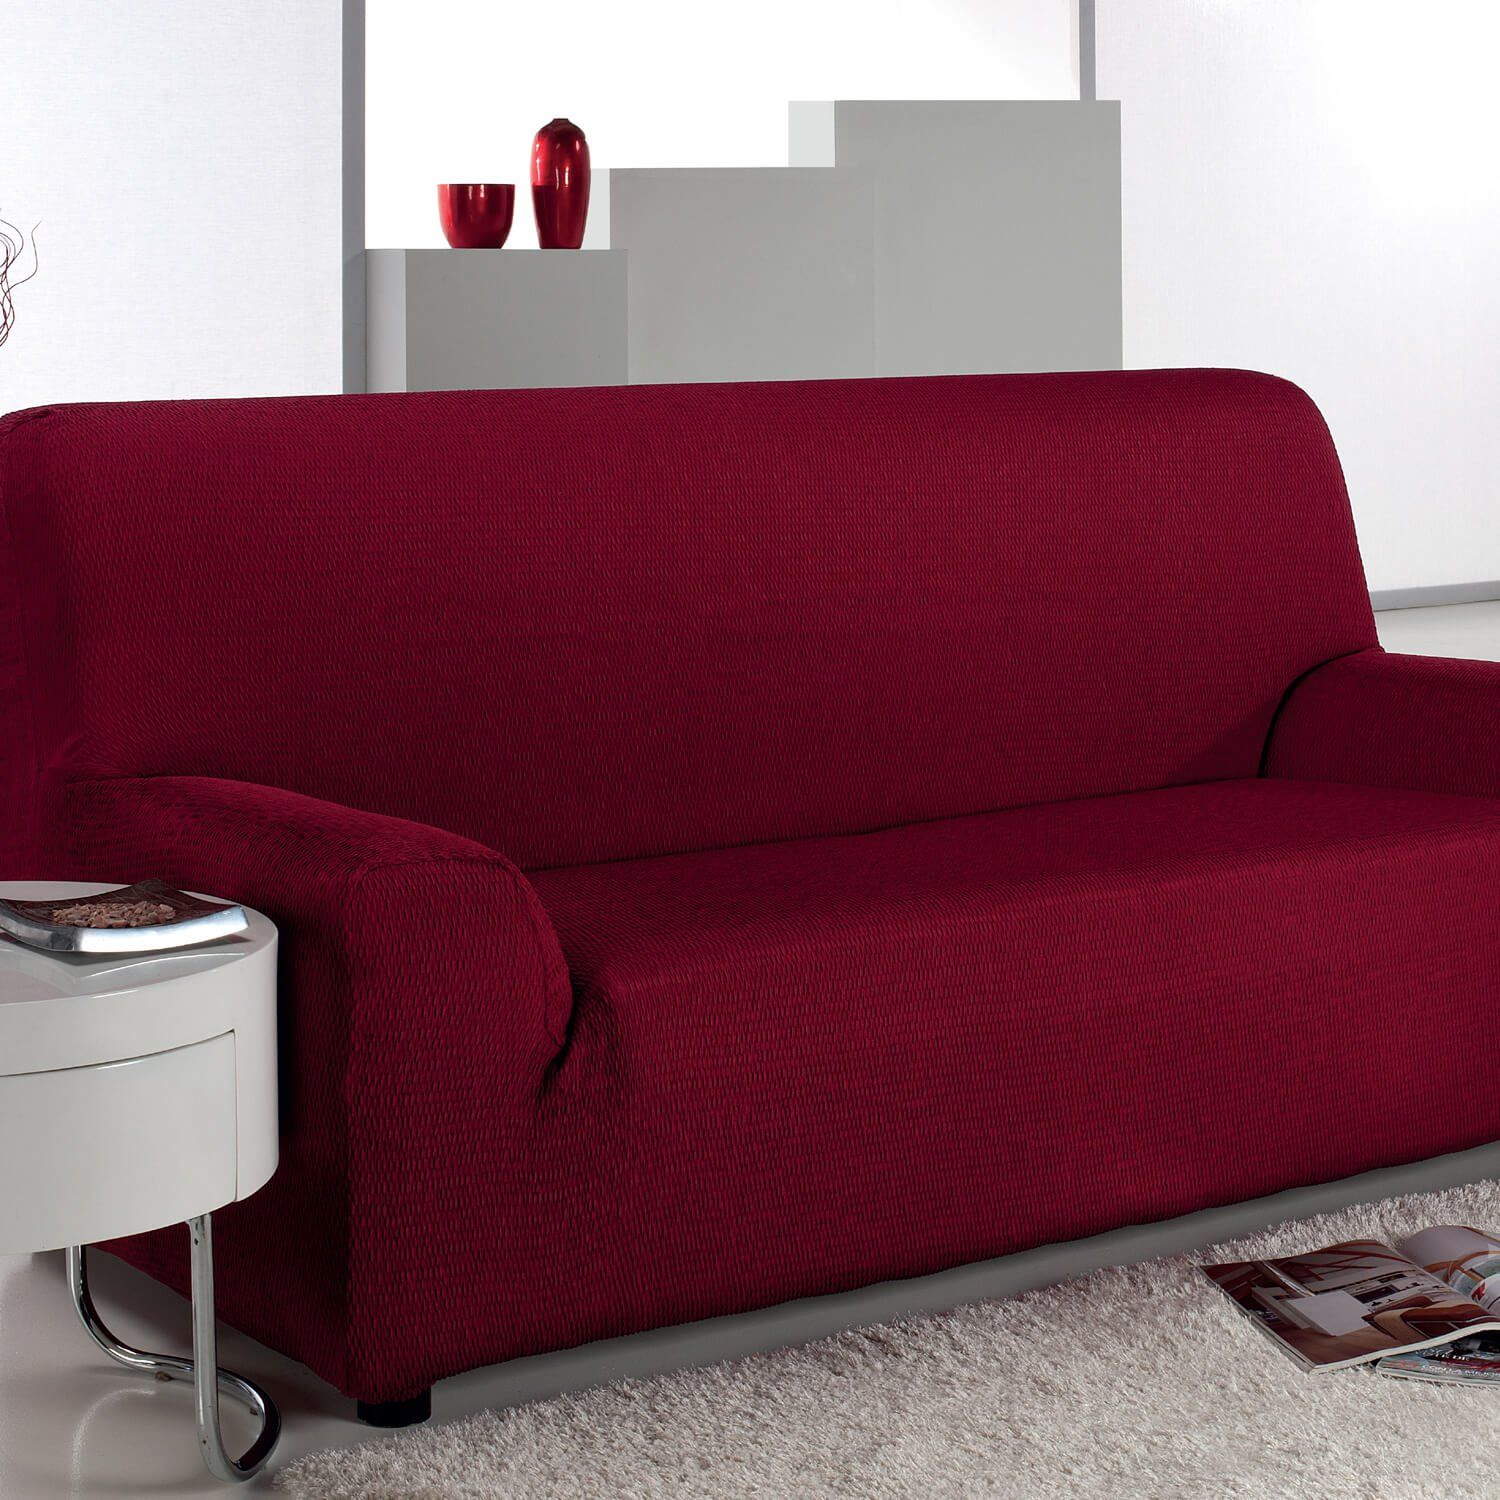 10 3 Seater Sofa Covers Incredible As Well As Attractive Latest Sofa Designs Sofa Covers Sofa Design